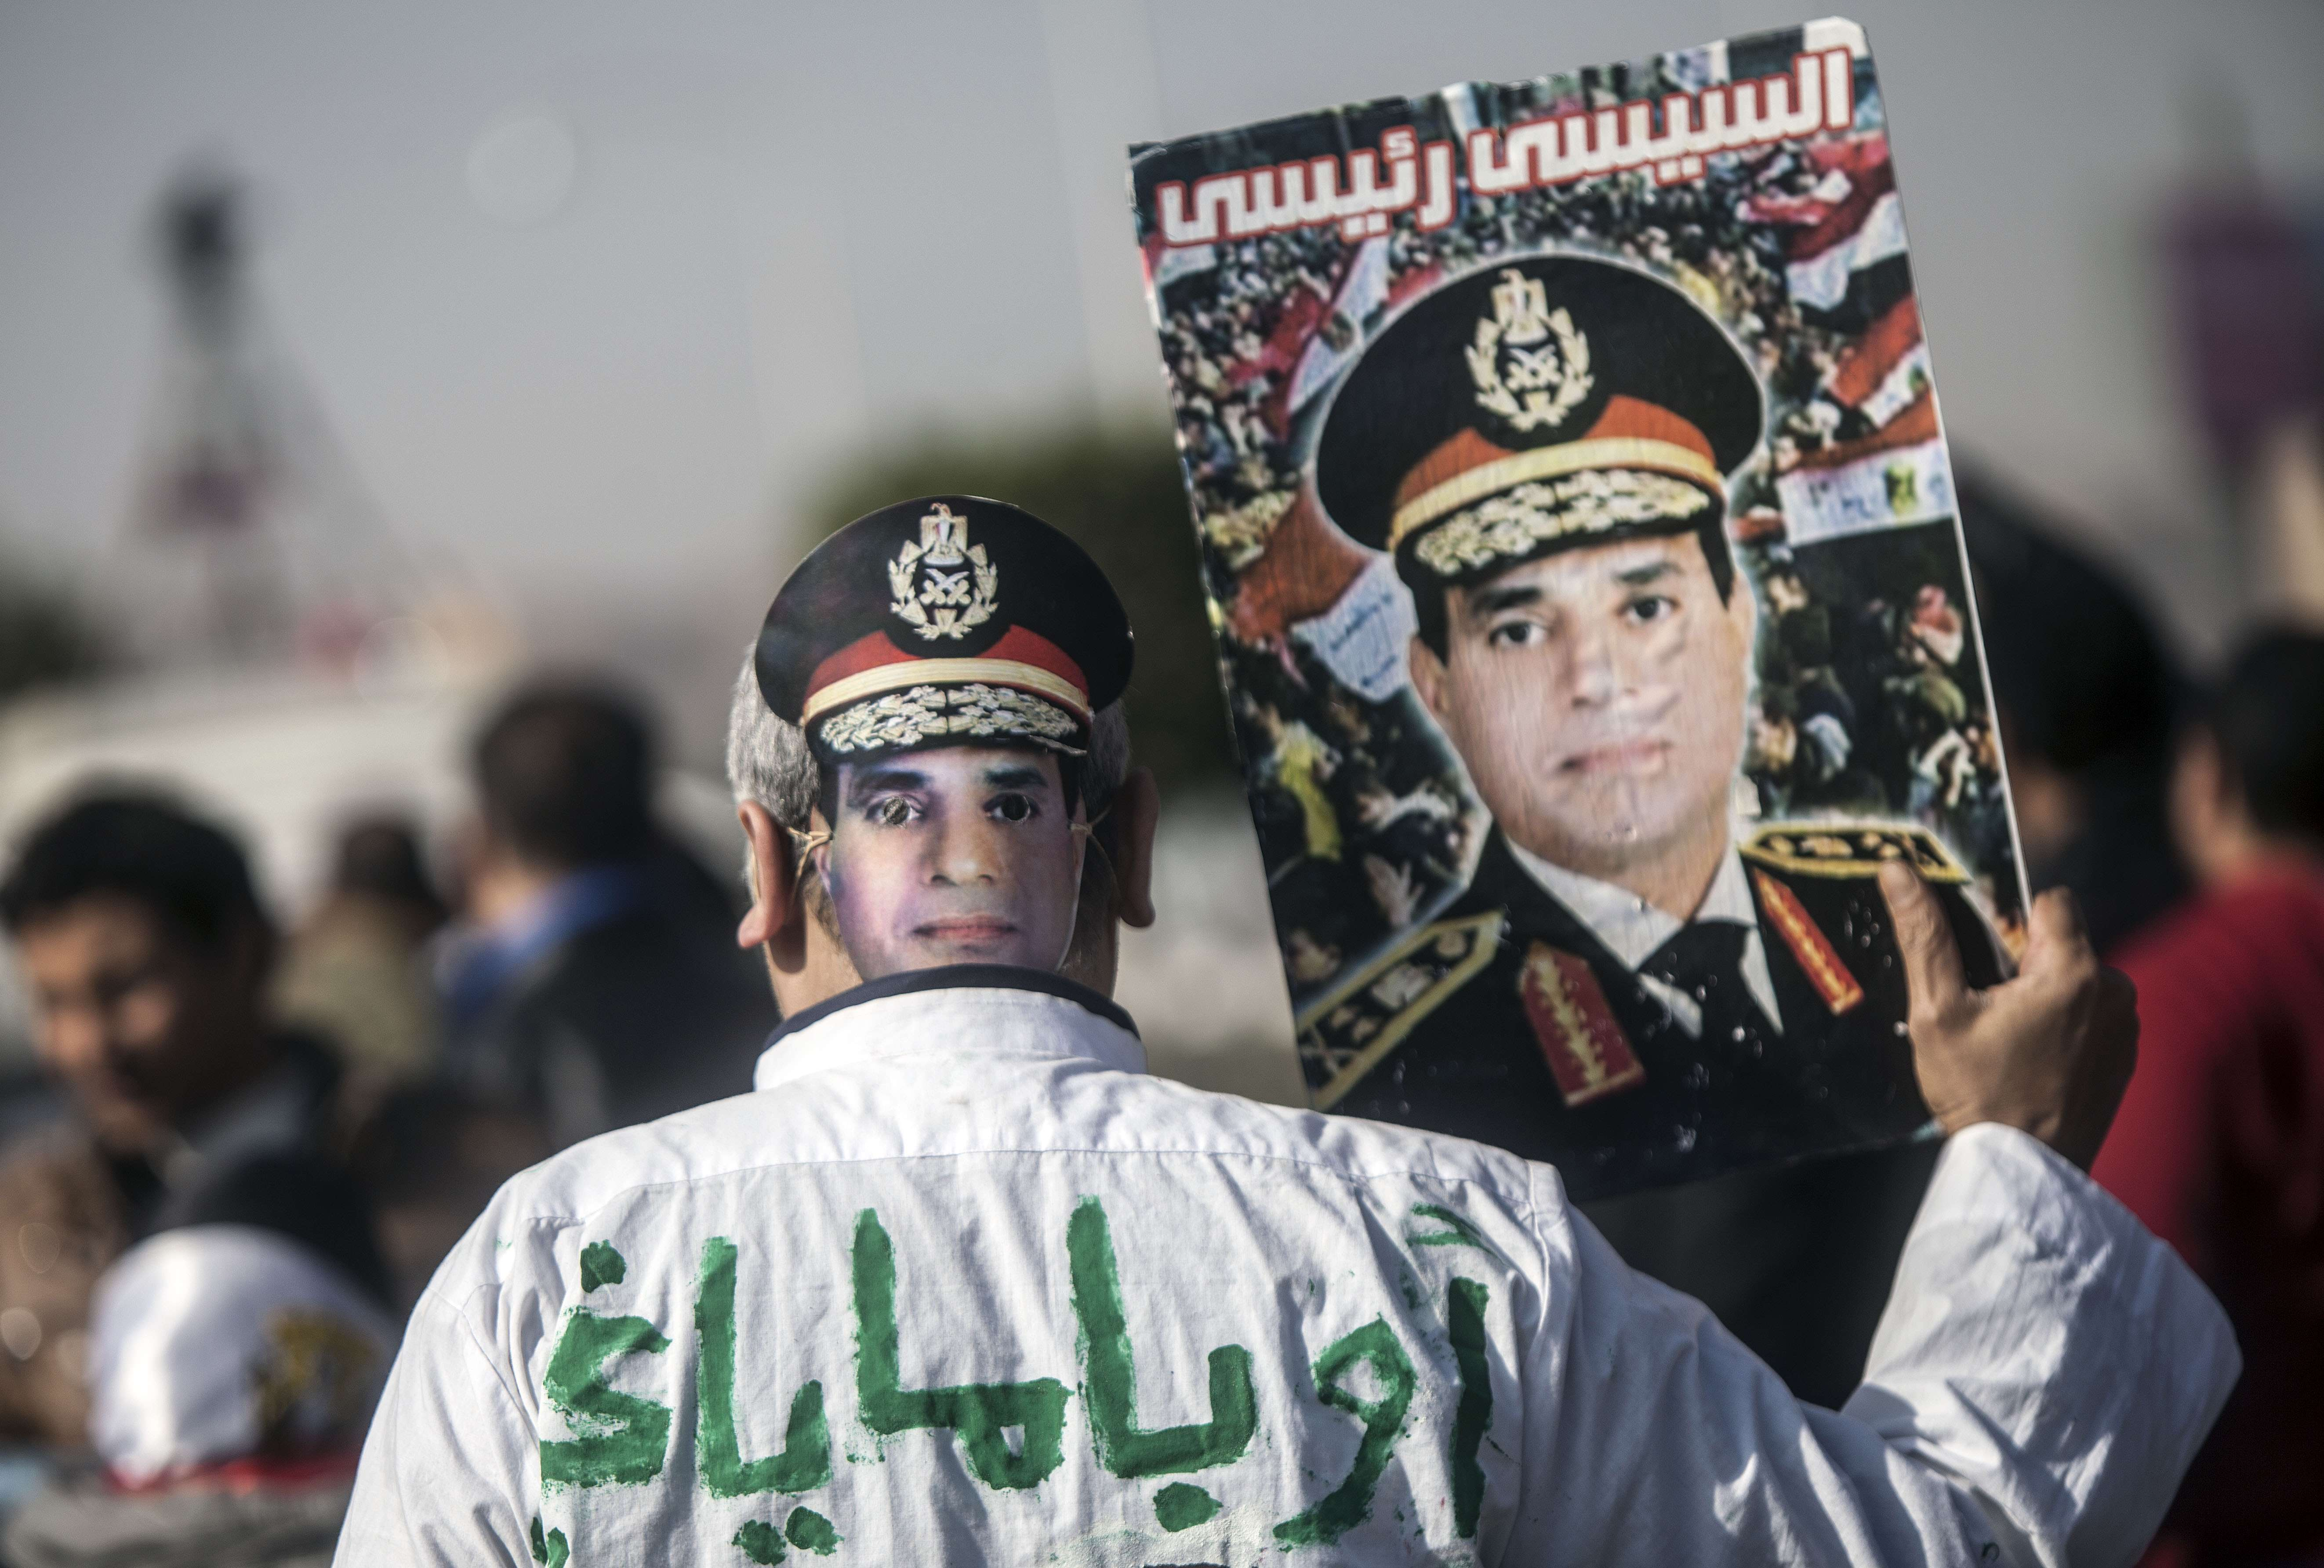 A supporter of Egypt's army chief Field Marshal Abdel Fattah al-Sisi, who is to run for the presidency in the upcoming elections, wears a mask and holds a portrait bearing the image of the military commander as he demonstrates outside the Police Academy in Cairo where a new hearing in the trial of deposed president Mohamed Morsi opened on January 28, 2014. Morsi went on trial on charges of breaking out of prison during the 2011 uprising against veteran strongman Hosni Mubarak.  (AFP PHOTO / MAHMUD KHALED)